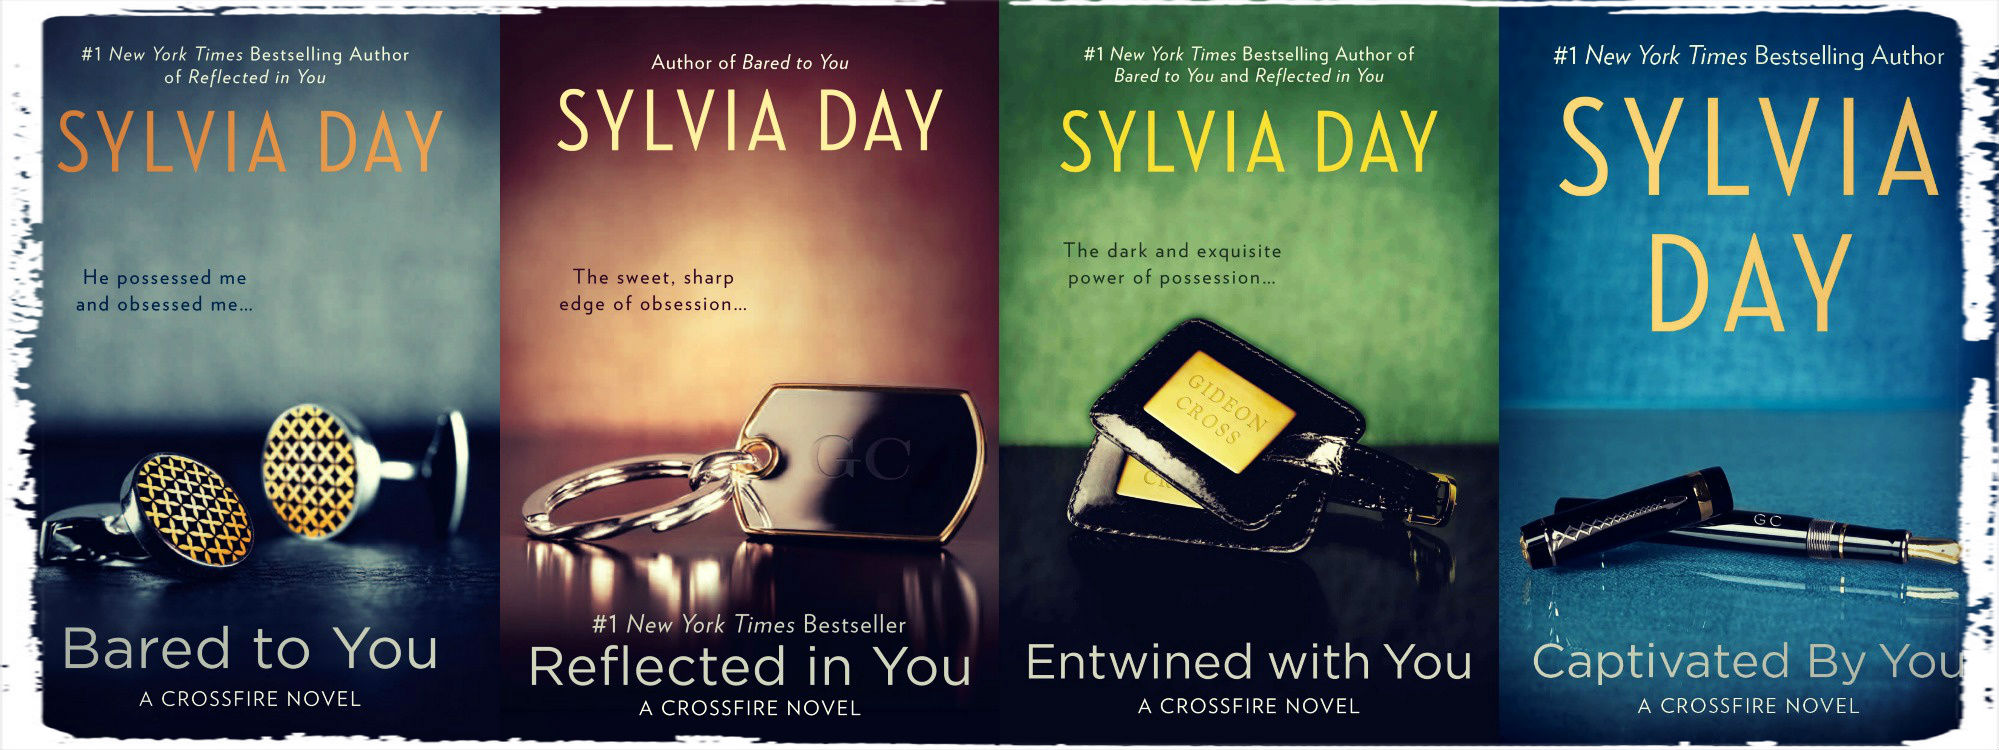 Exclusive Clip Captivated By You Crossfire 4 By Sylvia